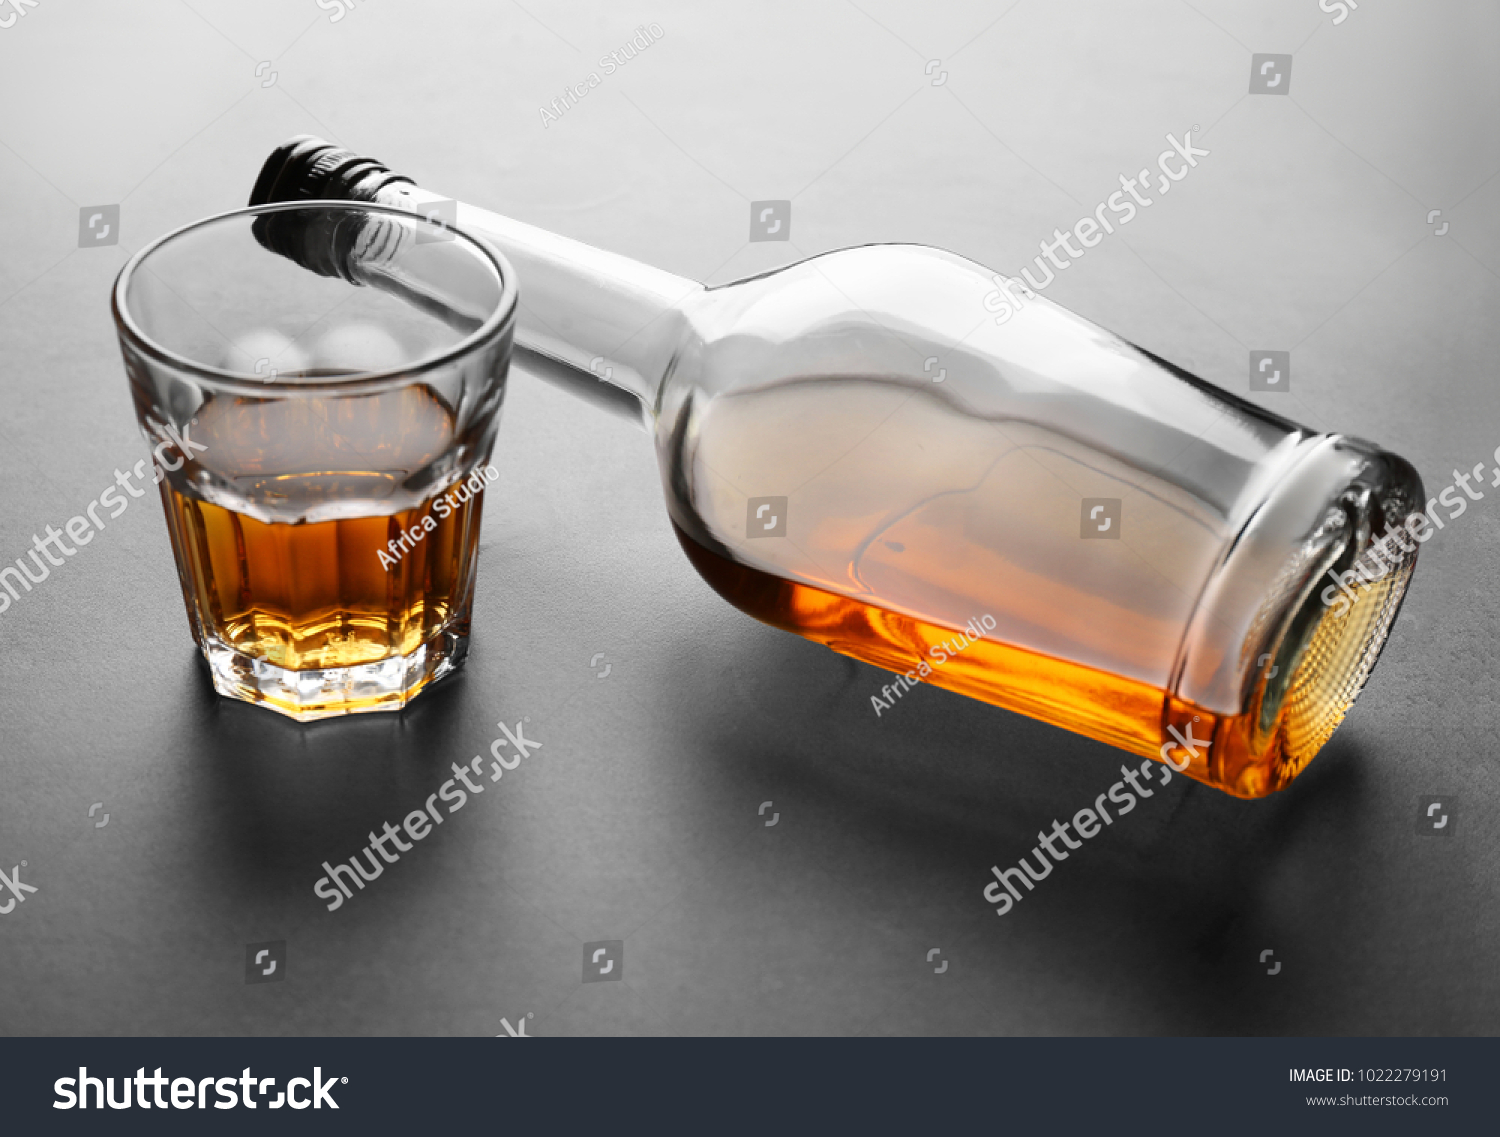 Glass and bottle of alcohol on grey background #1022279191